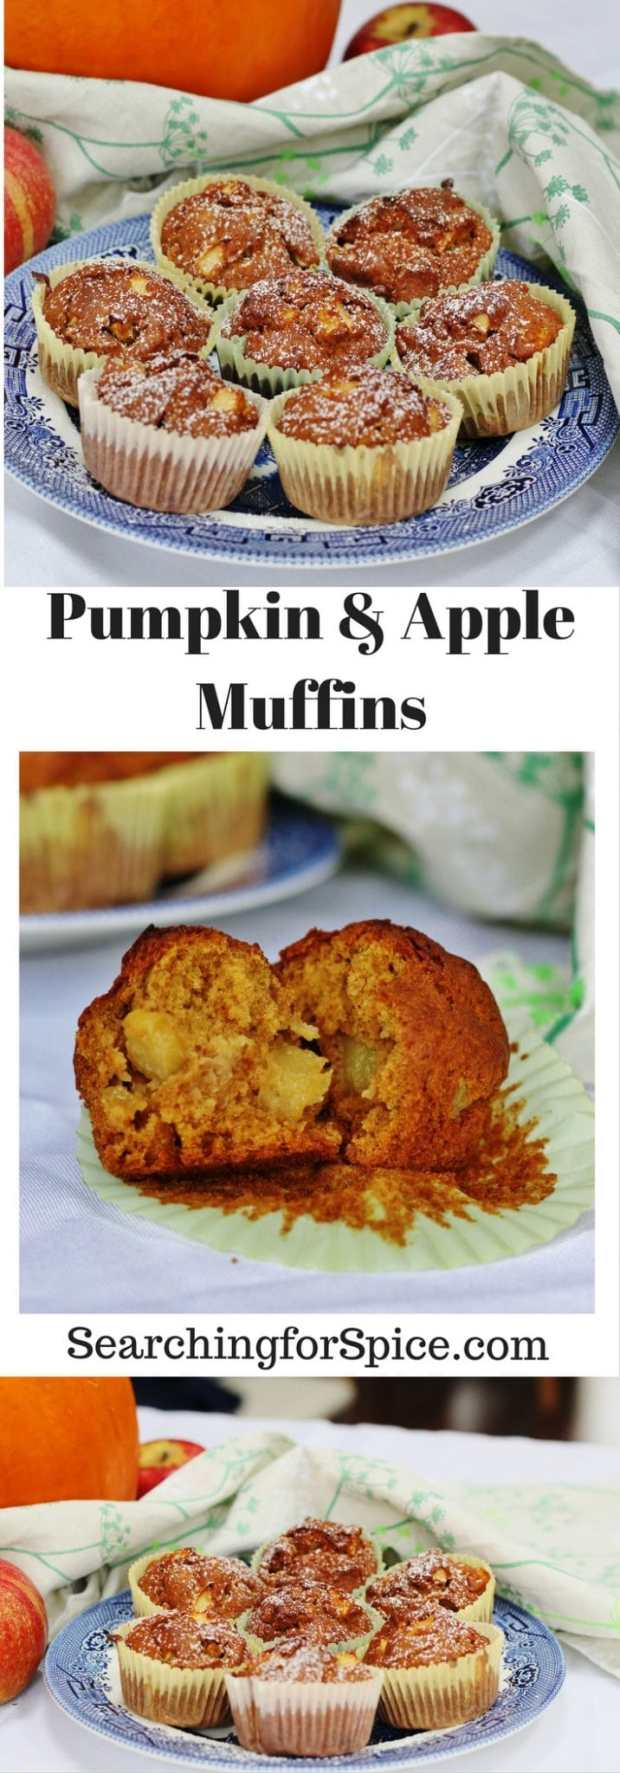 Pumpkin and apple muffins